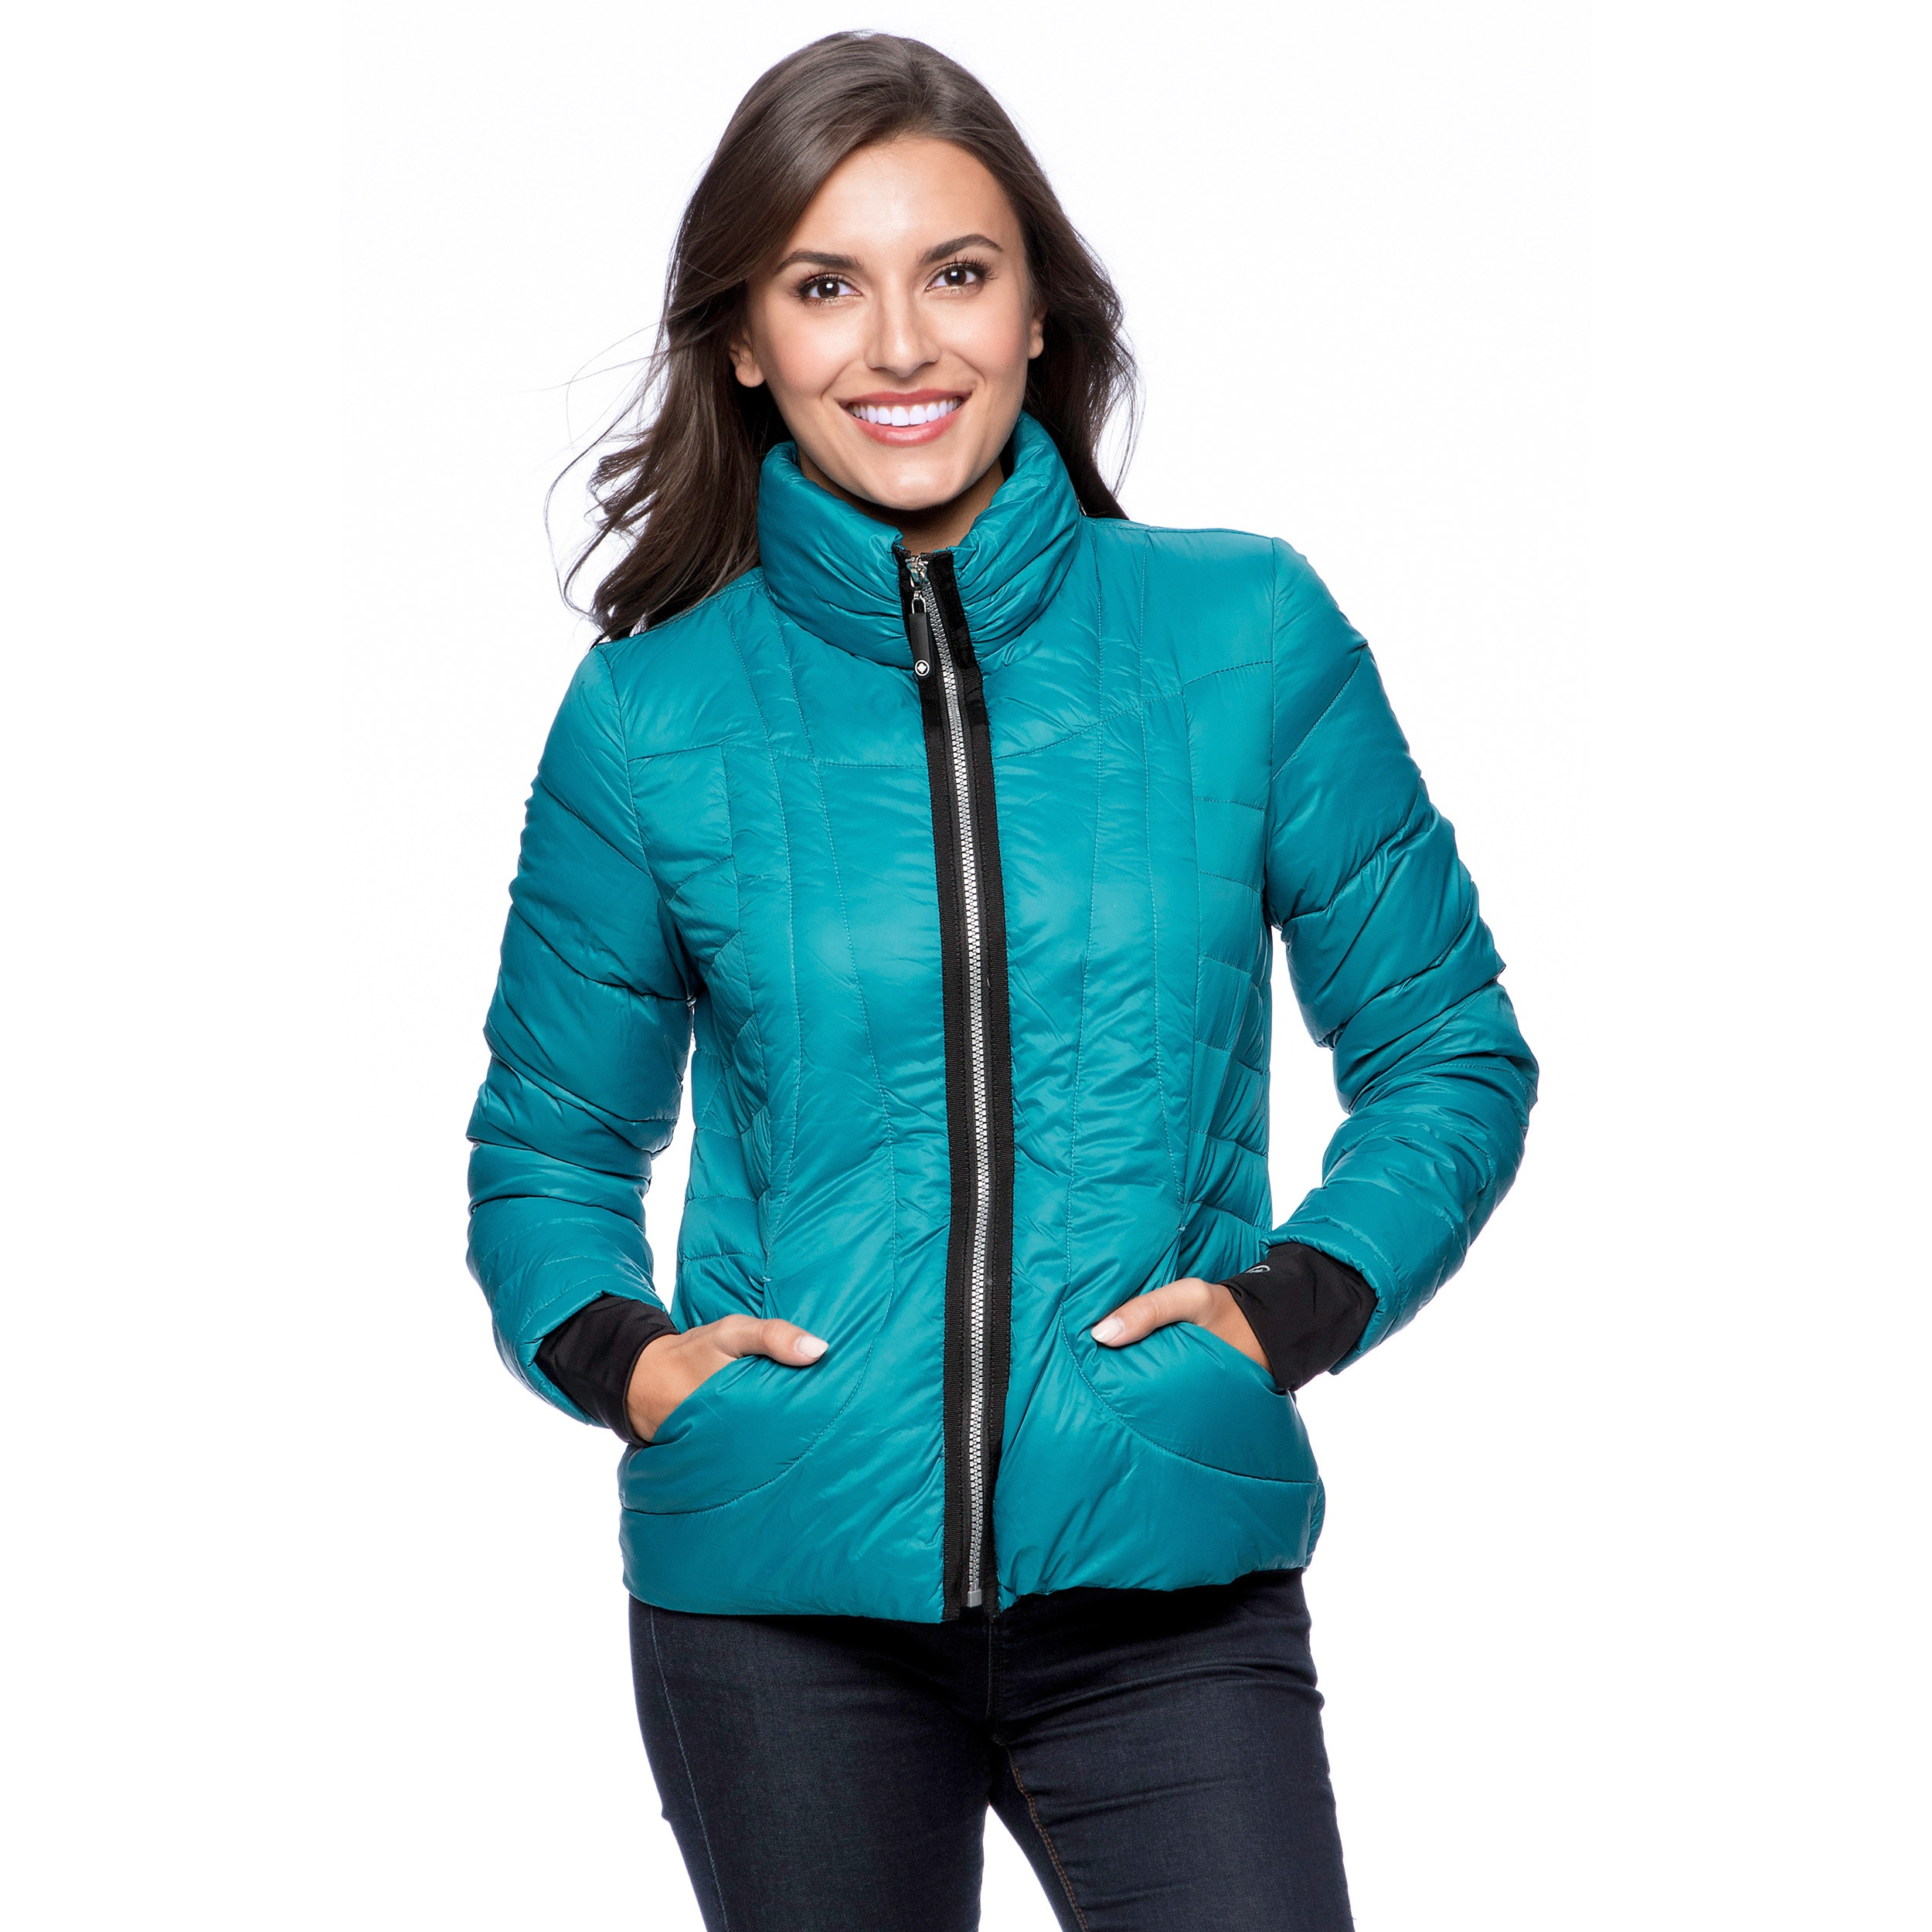 f8cc4c2d14c Shop Halifax Traders Women s Packable Down Fill Jacket - Free Shipping  Today - Overstock - 9420520